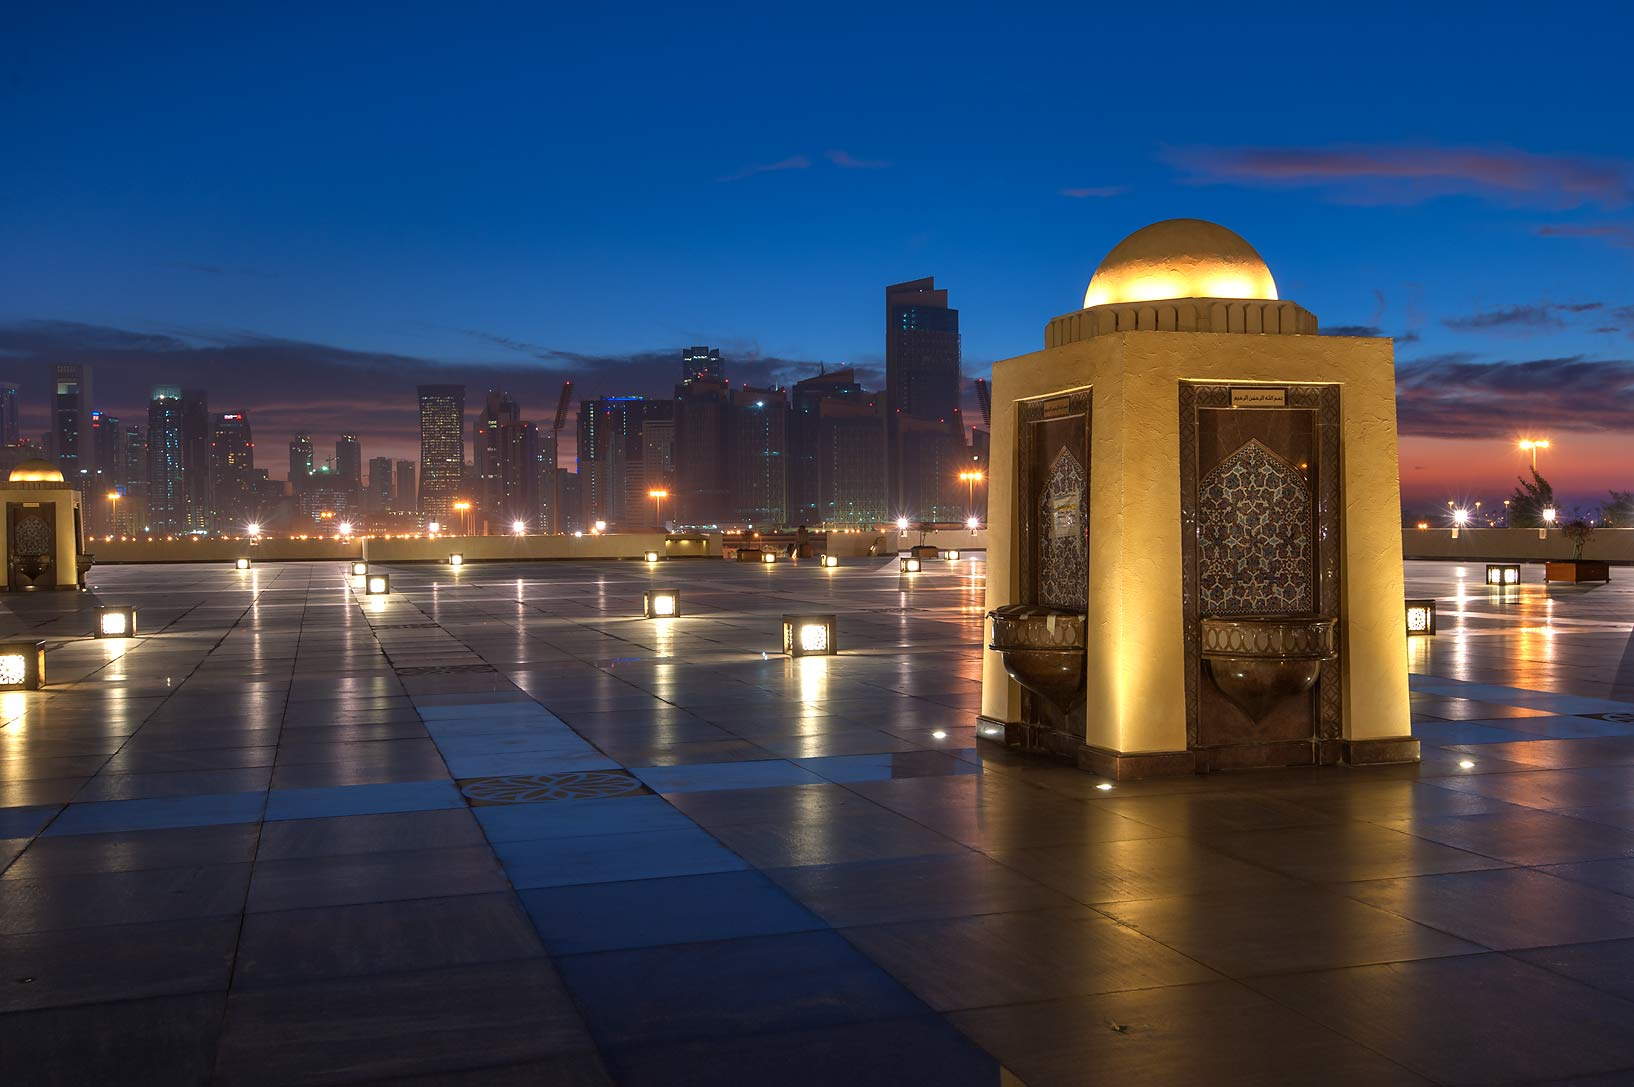 Water fountain of State Mosque (Sheikh Muhammad Ibn Abdul Wahhab Mosque). Doha, Qatar